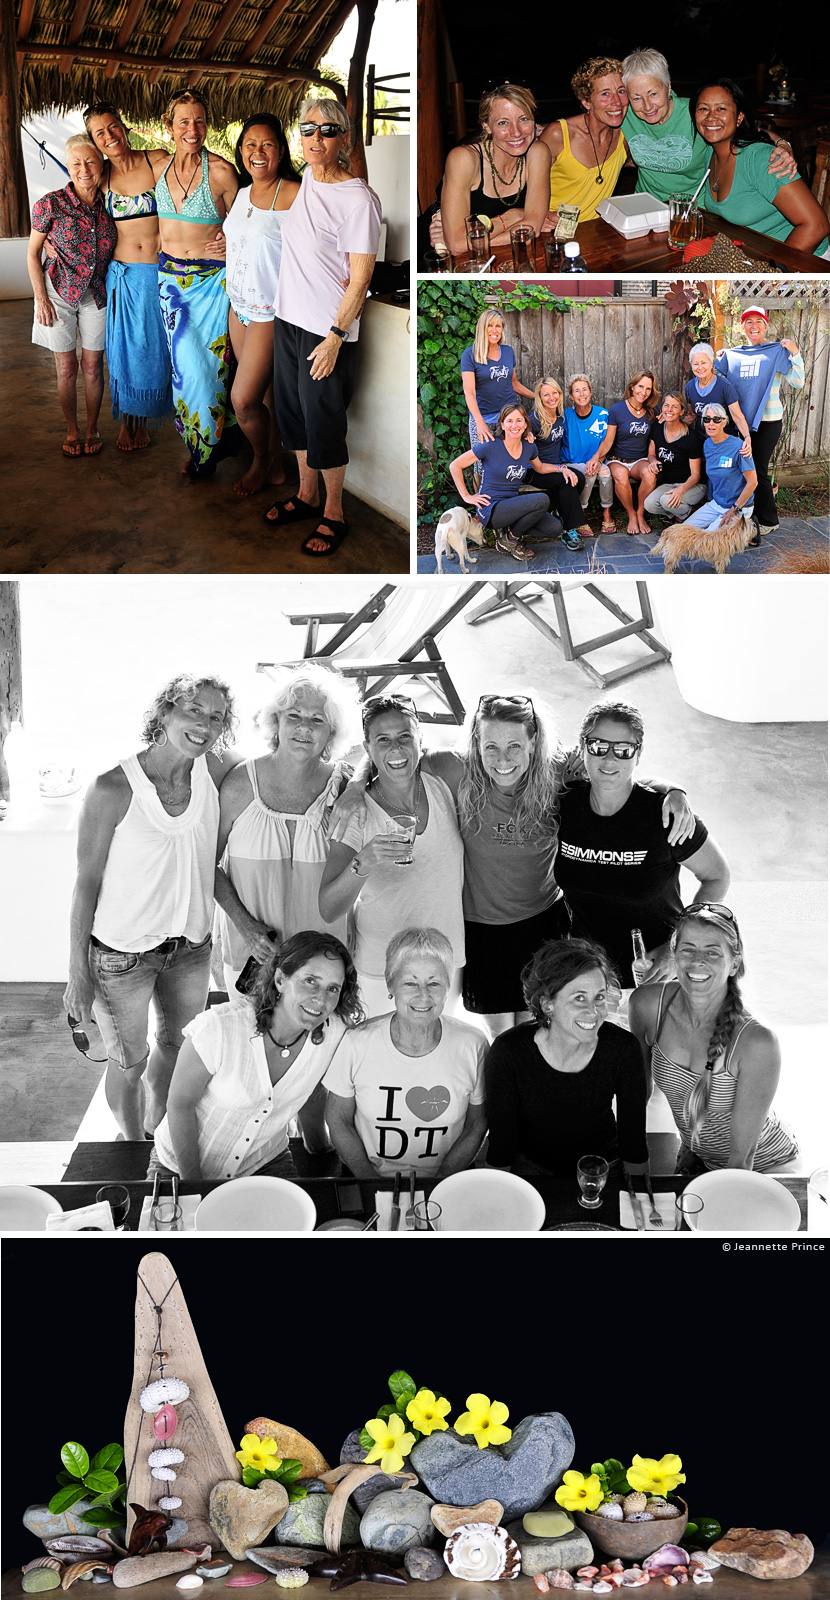 Zeuf Hesson and friends on a surf trip to Mexico. Linda Benson, Mary Bagalso, Ashley Lloyd, Heather Hudson, Kristy Murphy, Jeannette Prince, and Cat Slatinsky. Photos © Jeannette Prince.